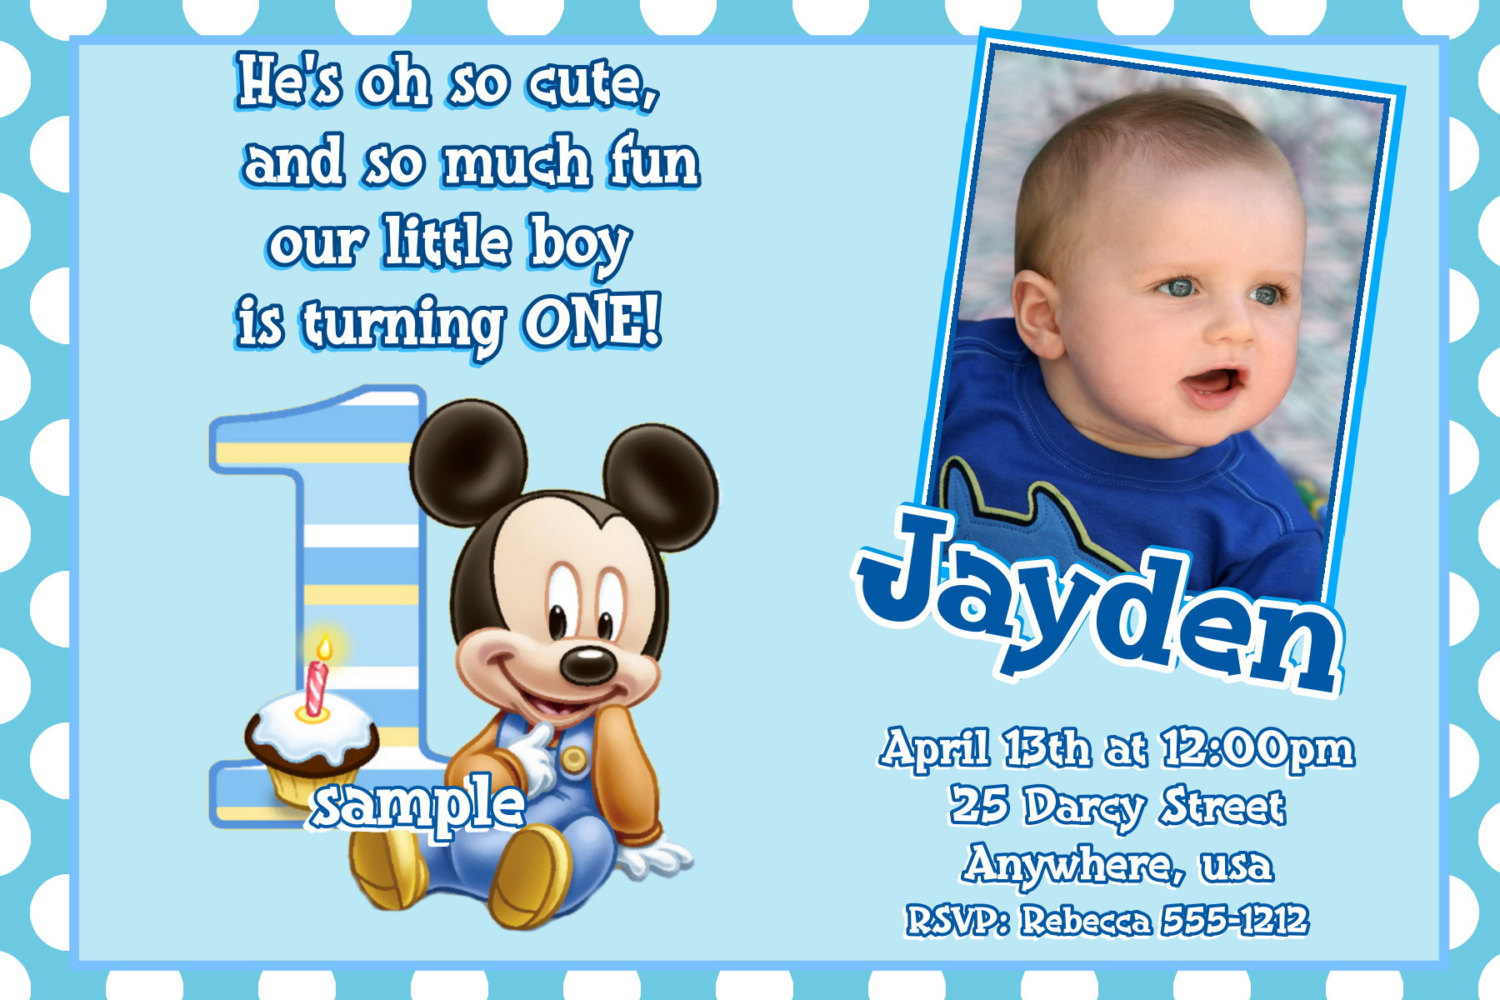 invitation quotes for first birthday party ; 7f2cdebfc71da56c5ac0aa647b72af74